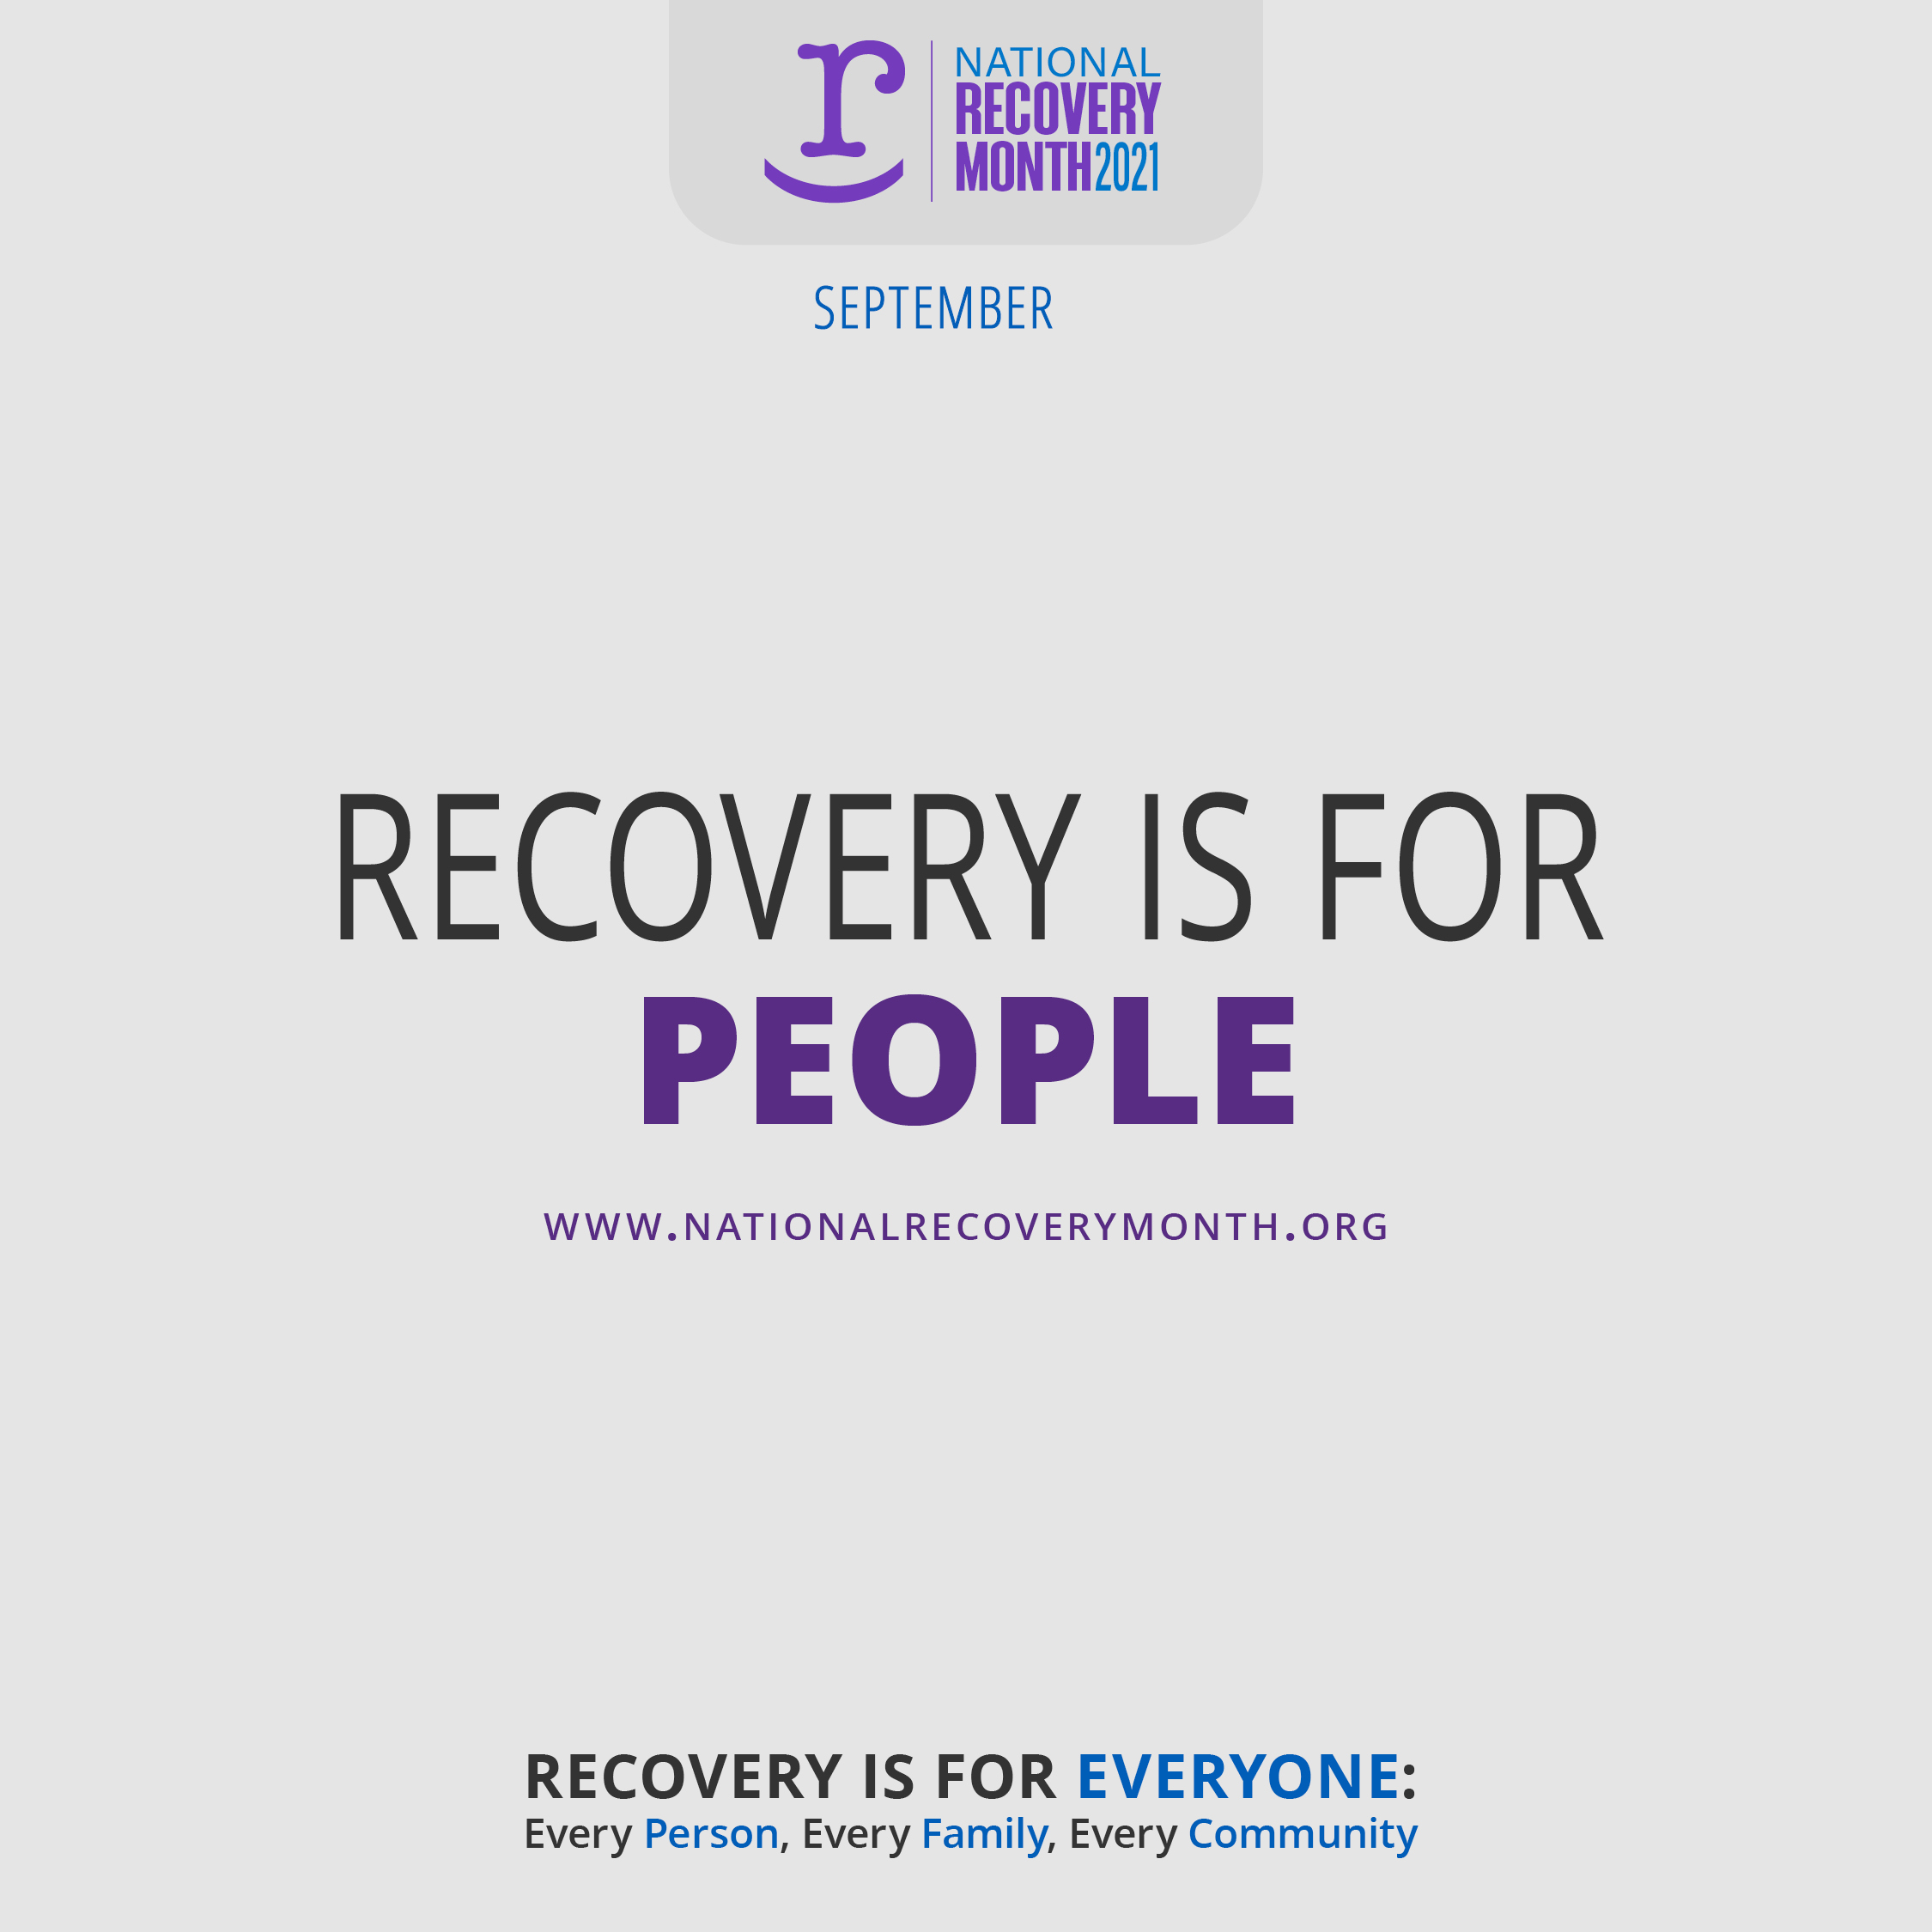 national_recovery-month_social-media-announcement_ig-3a_041421